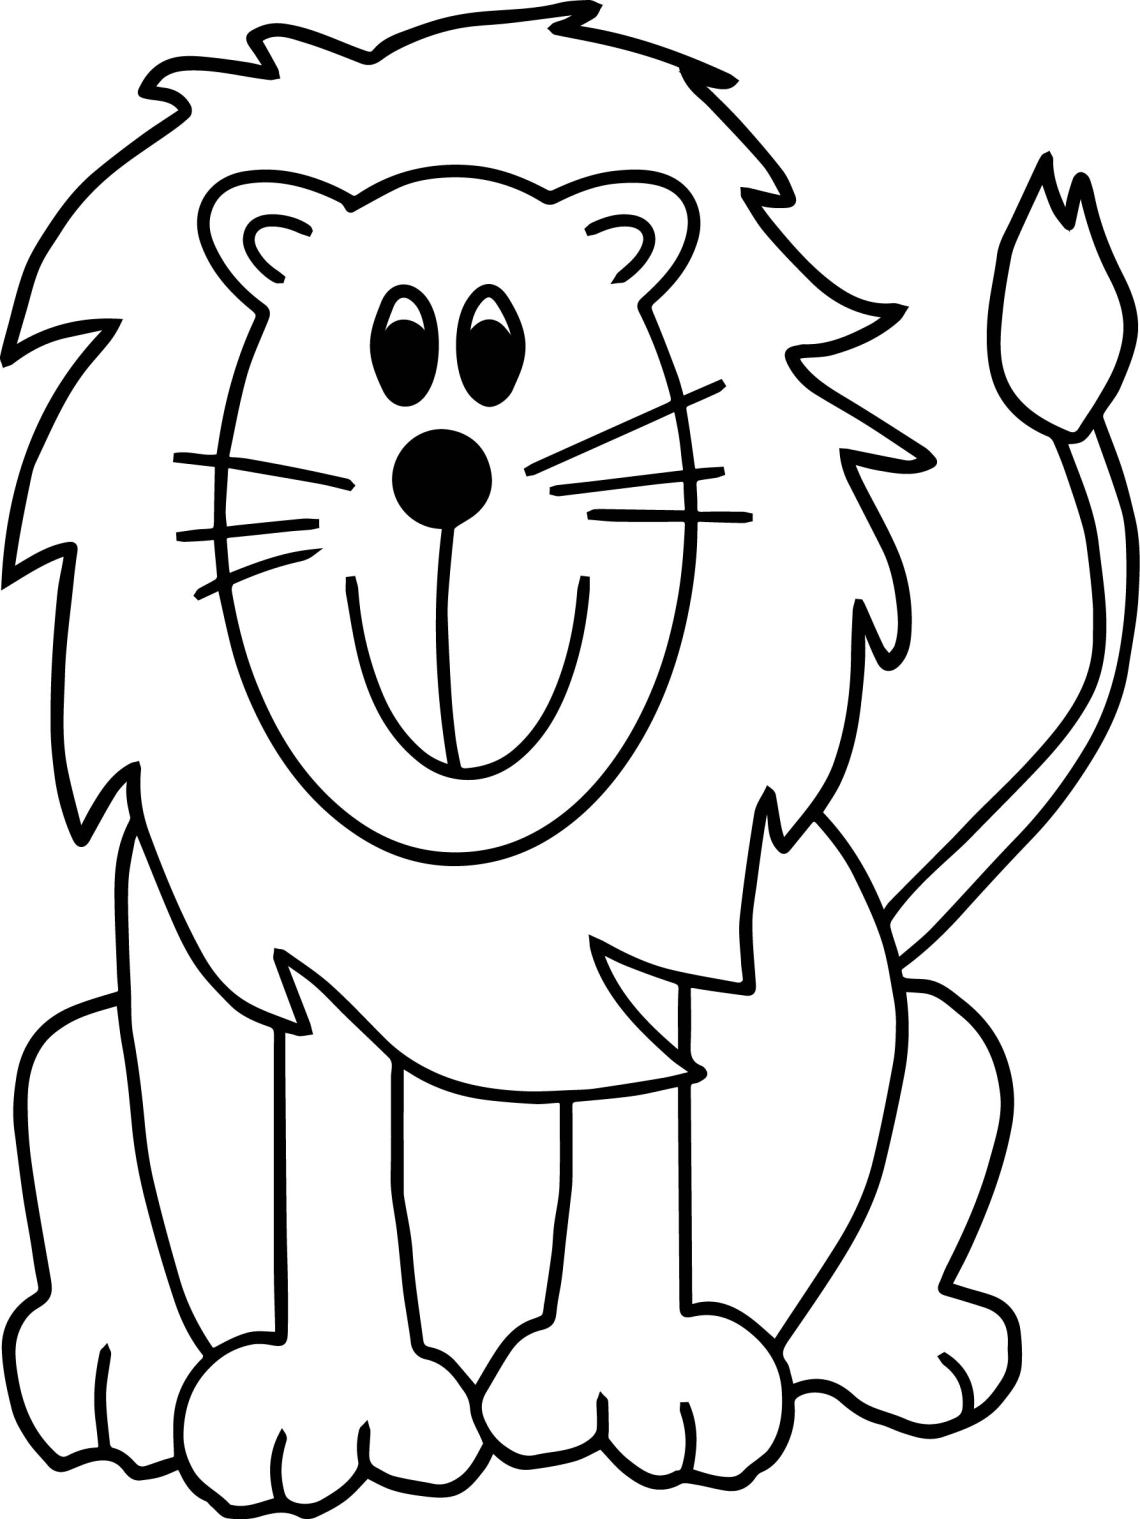 Lion Zoo Coloring Page | Wecoloringpage.com | printable coloring pages zoo animals